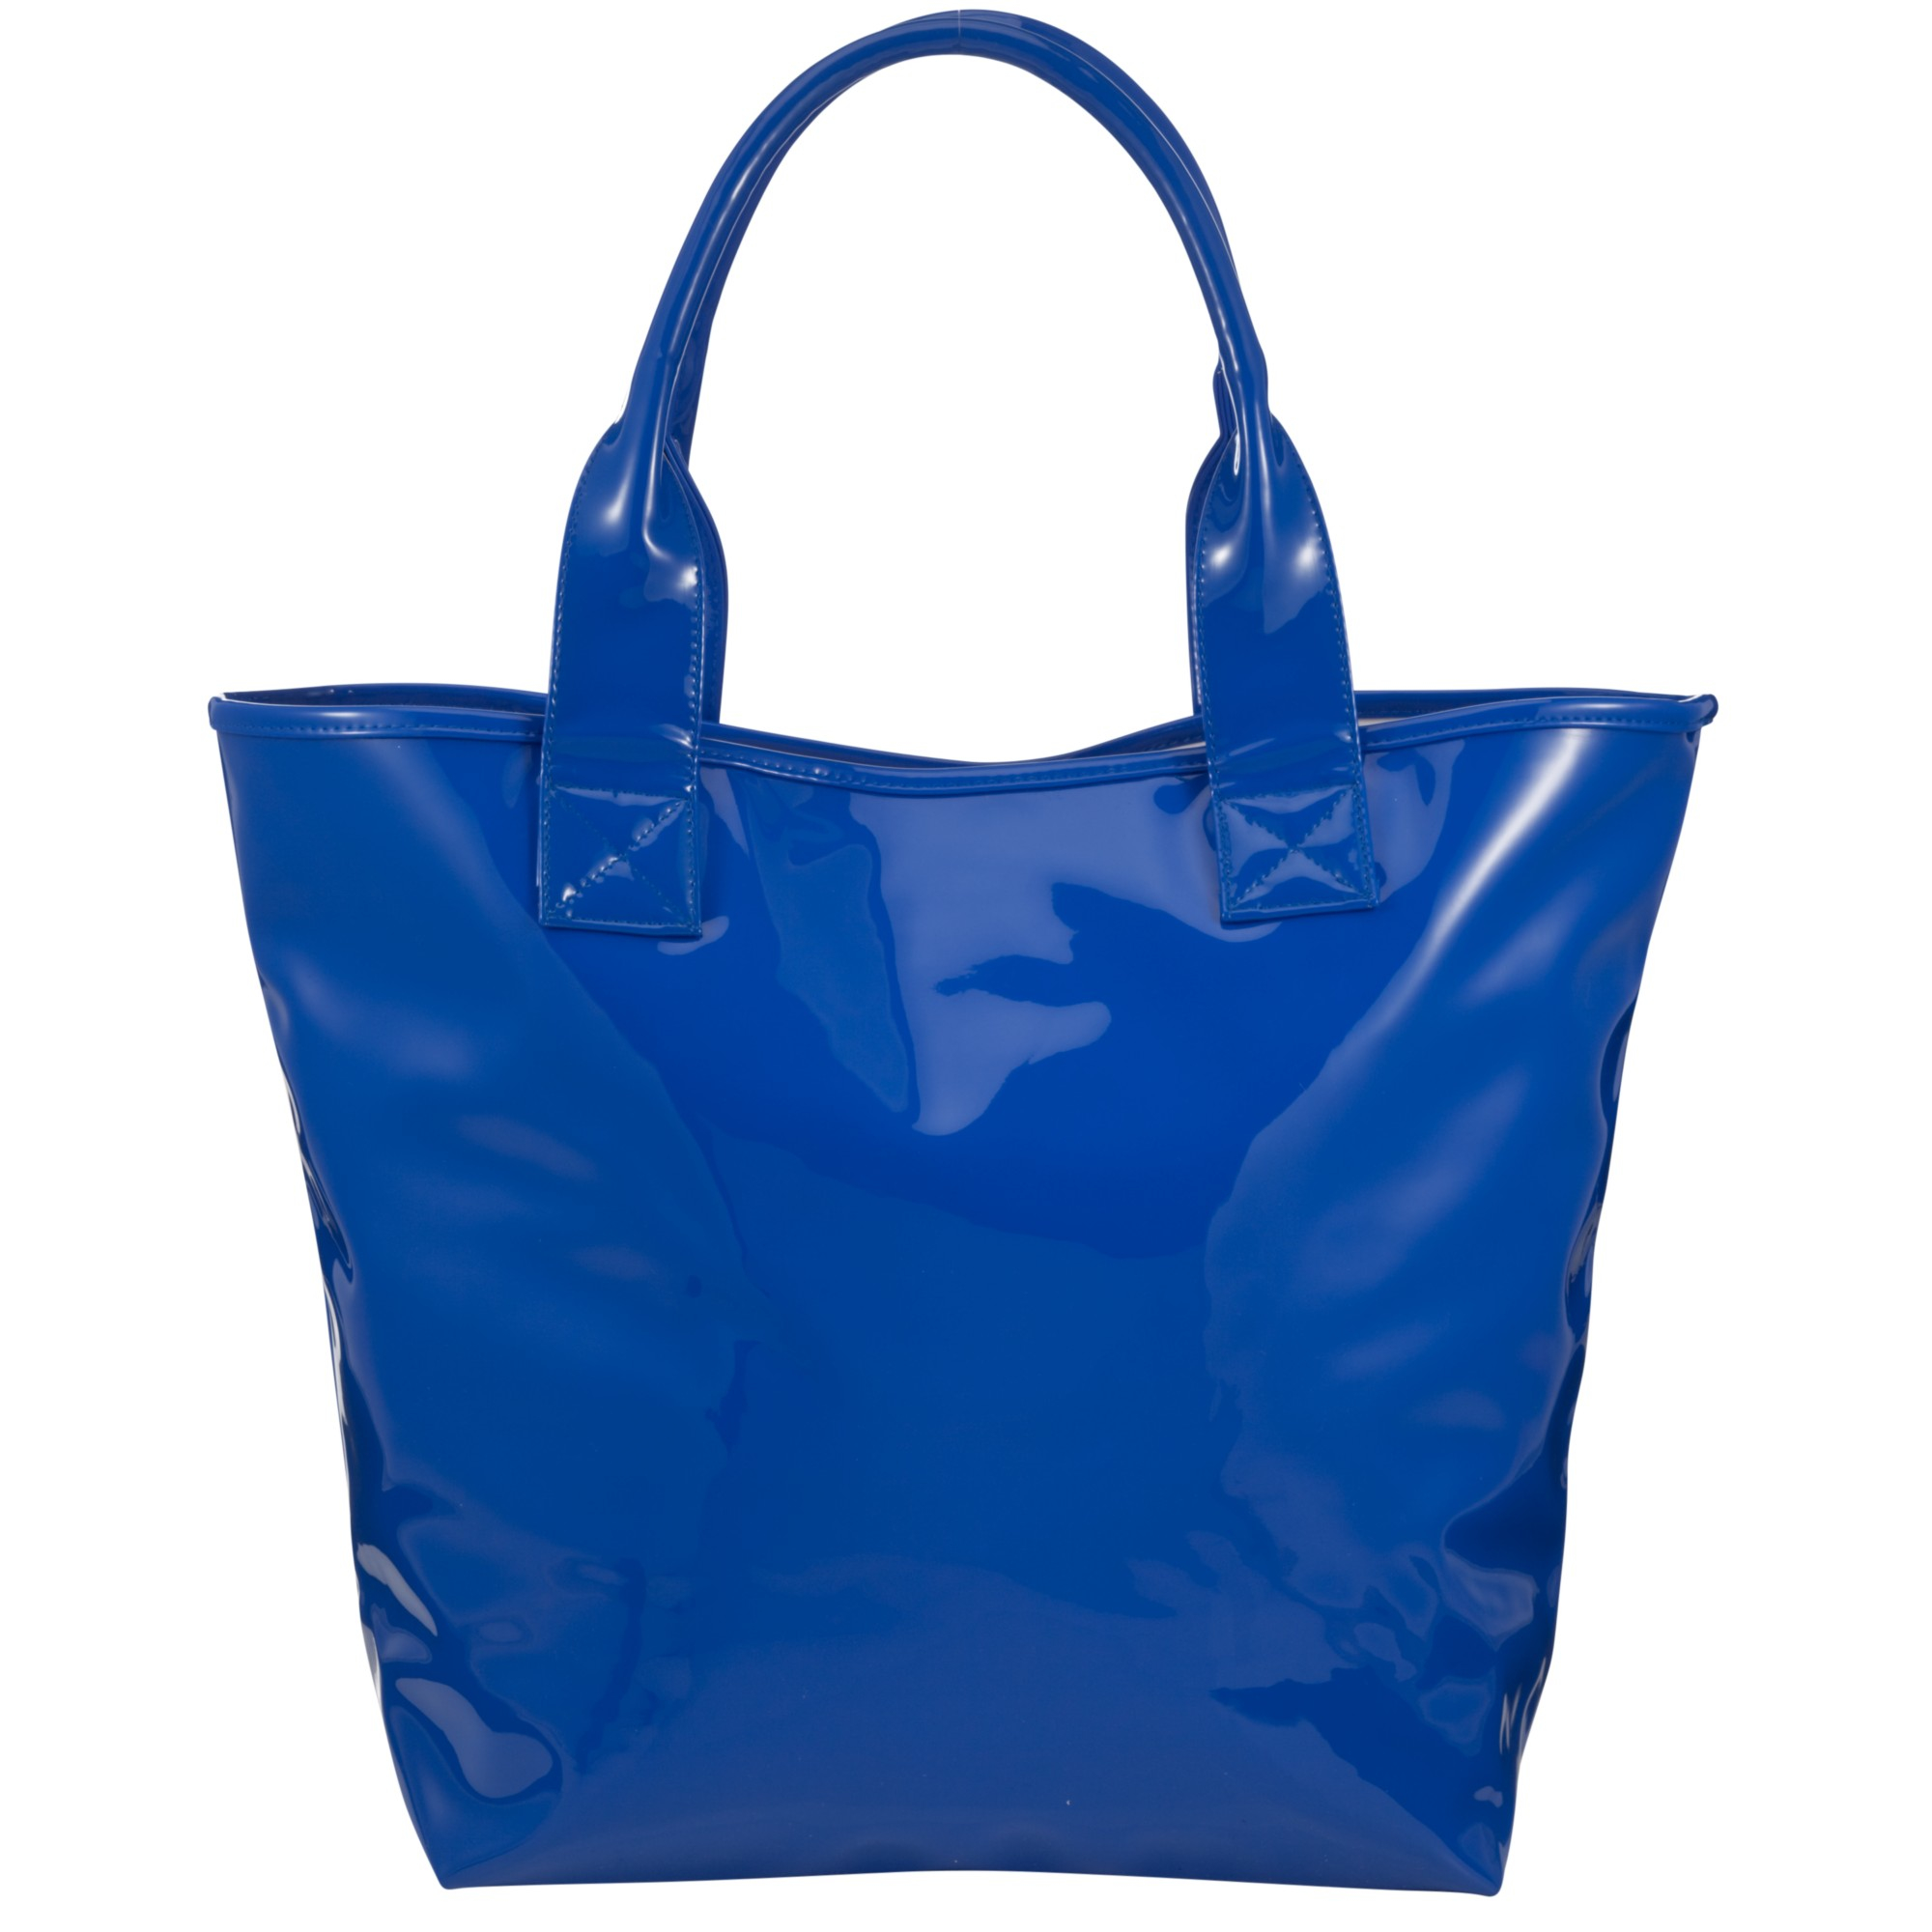 Seafolly Carried Away Hit The Beach Tote in Blue